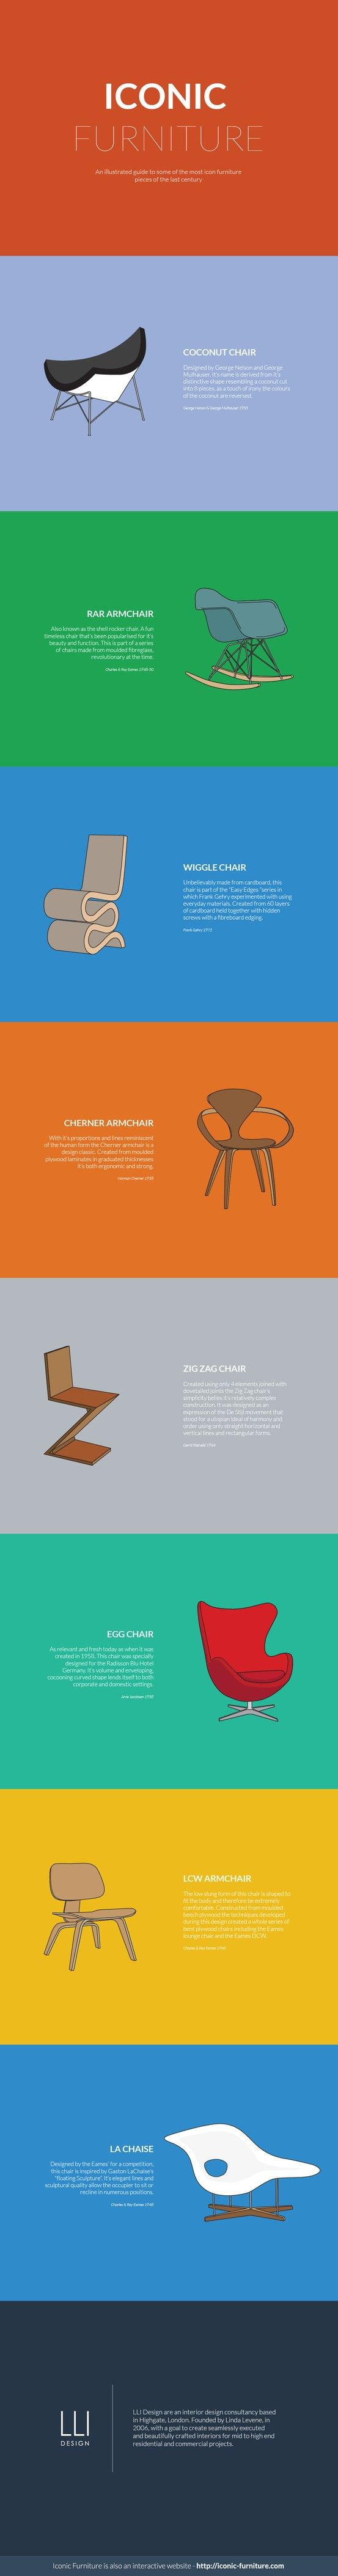 Iconic Furniture An illustrated guide to some of the most iconic furniture pieces of the